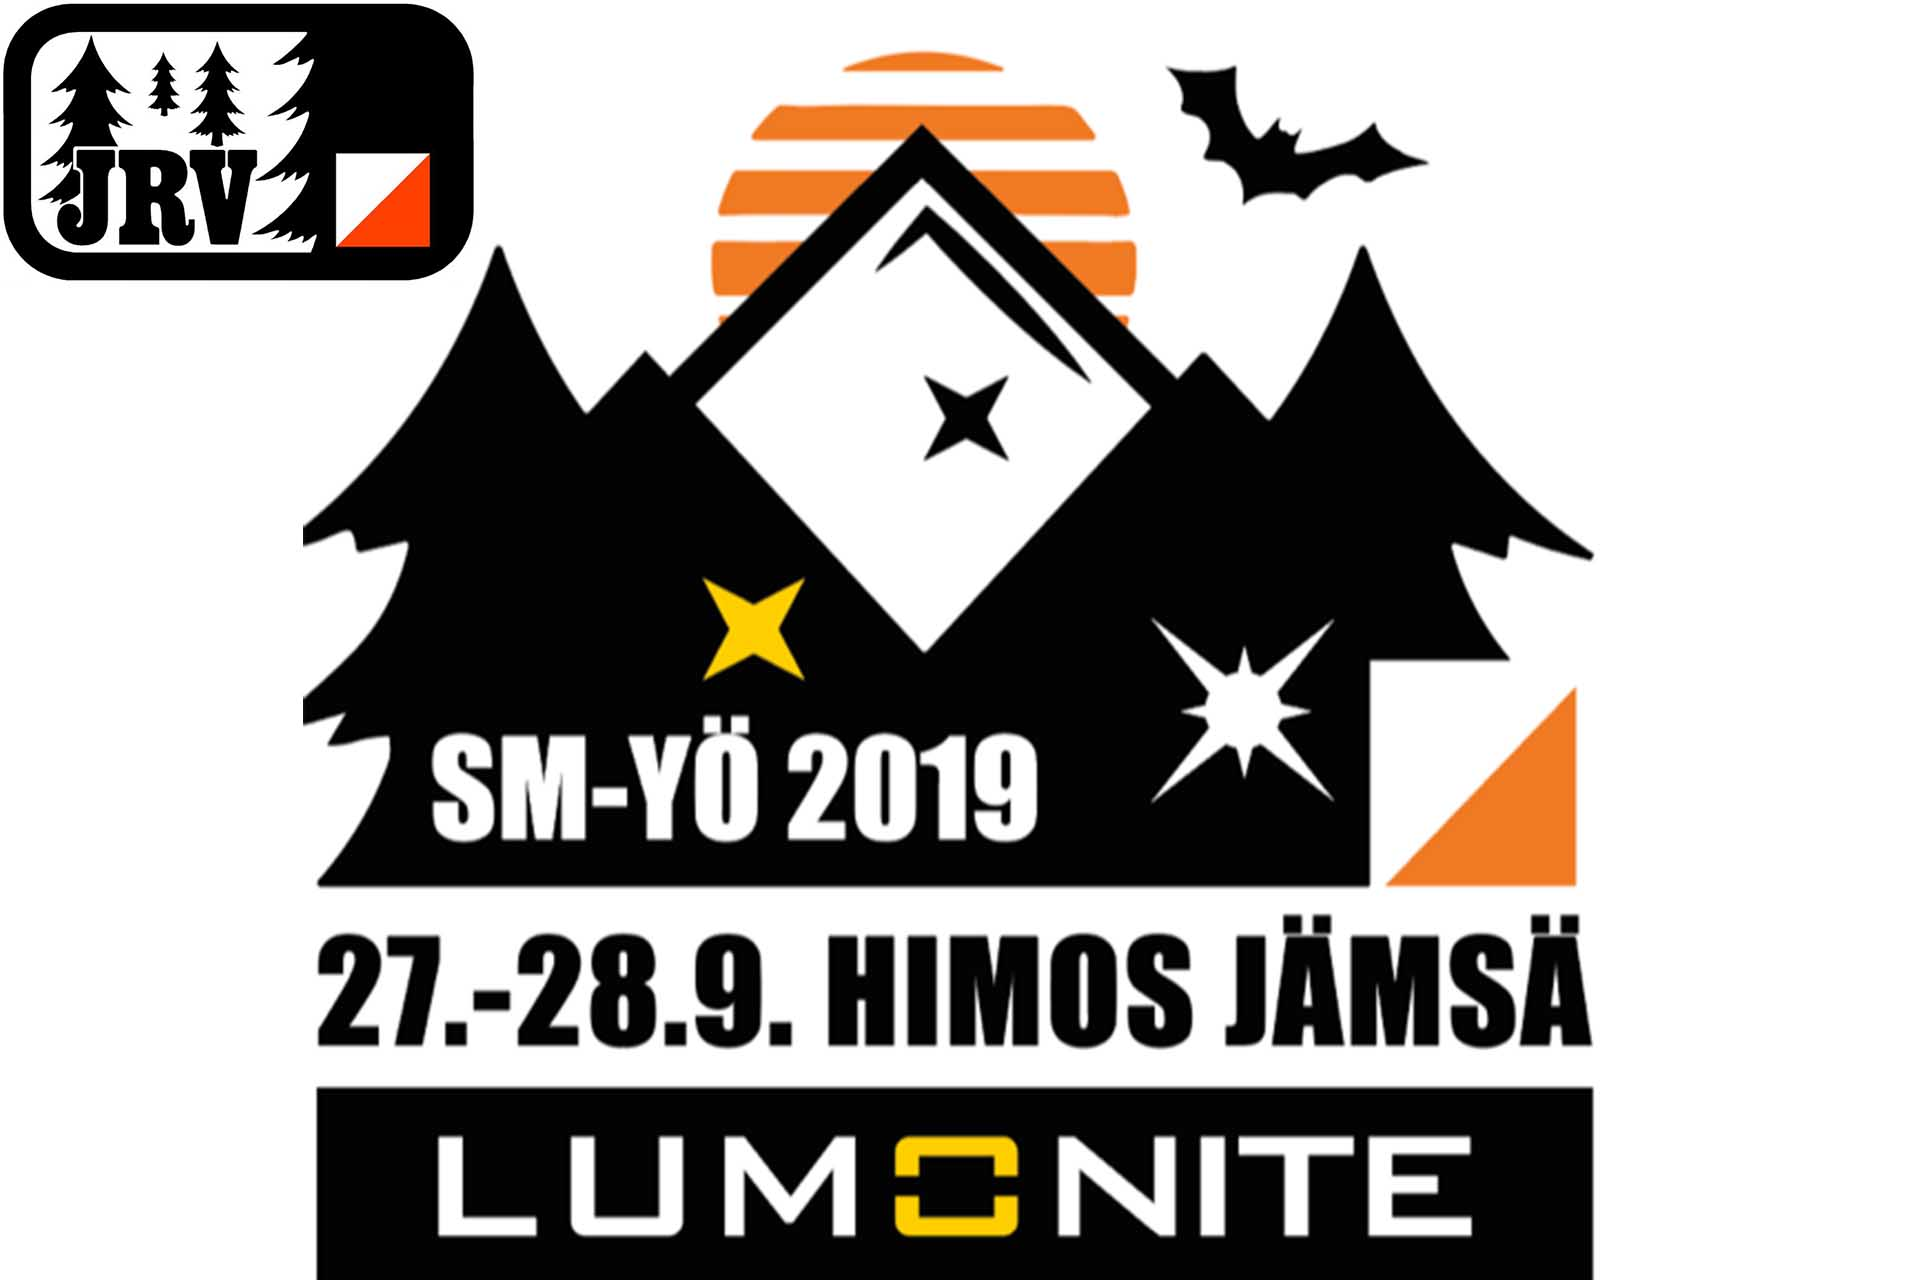 Lumonite SM-yö 2019